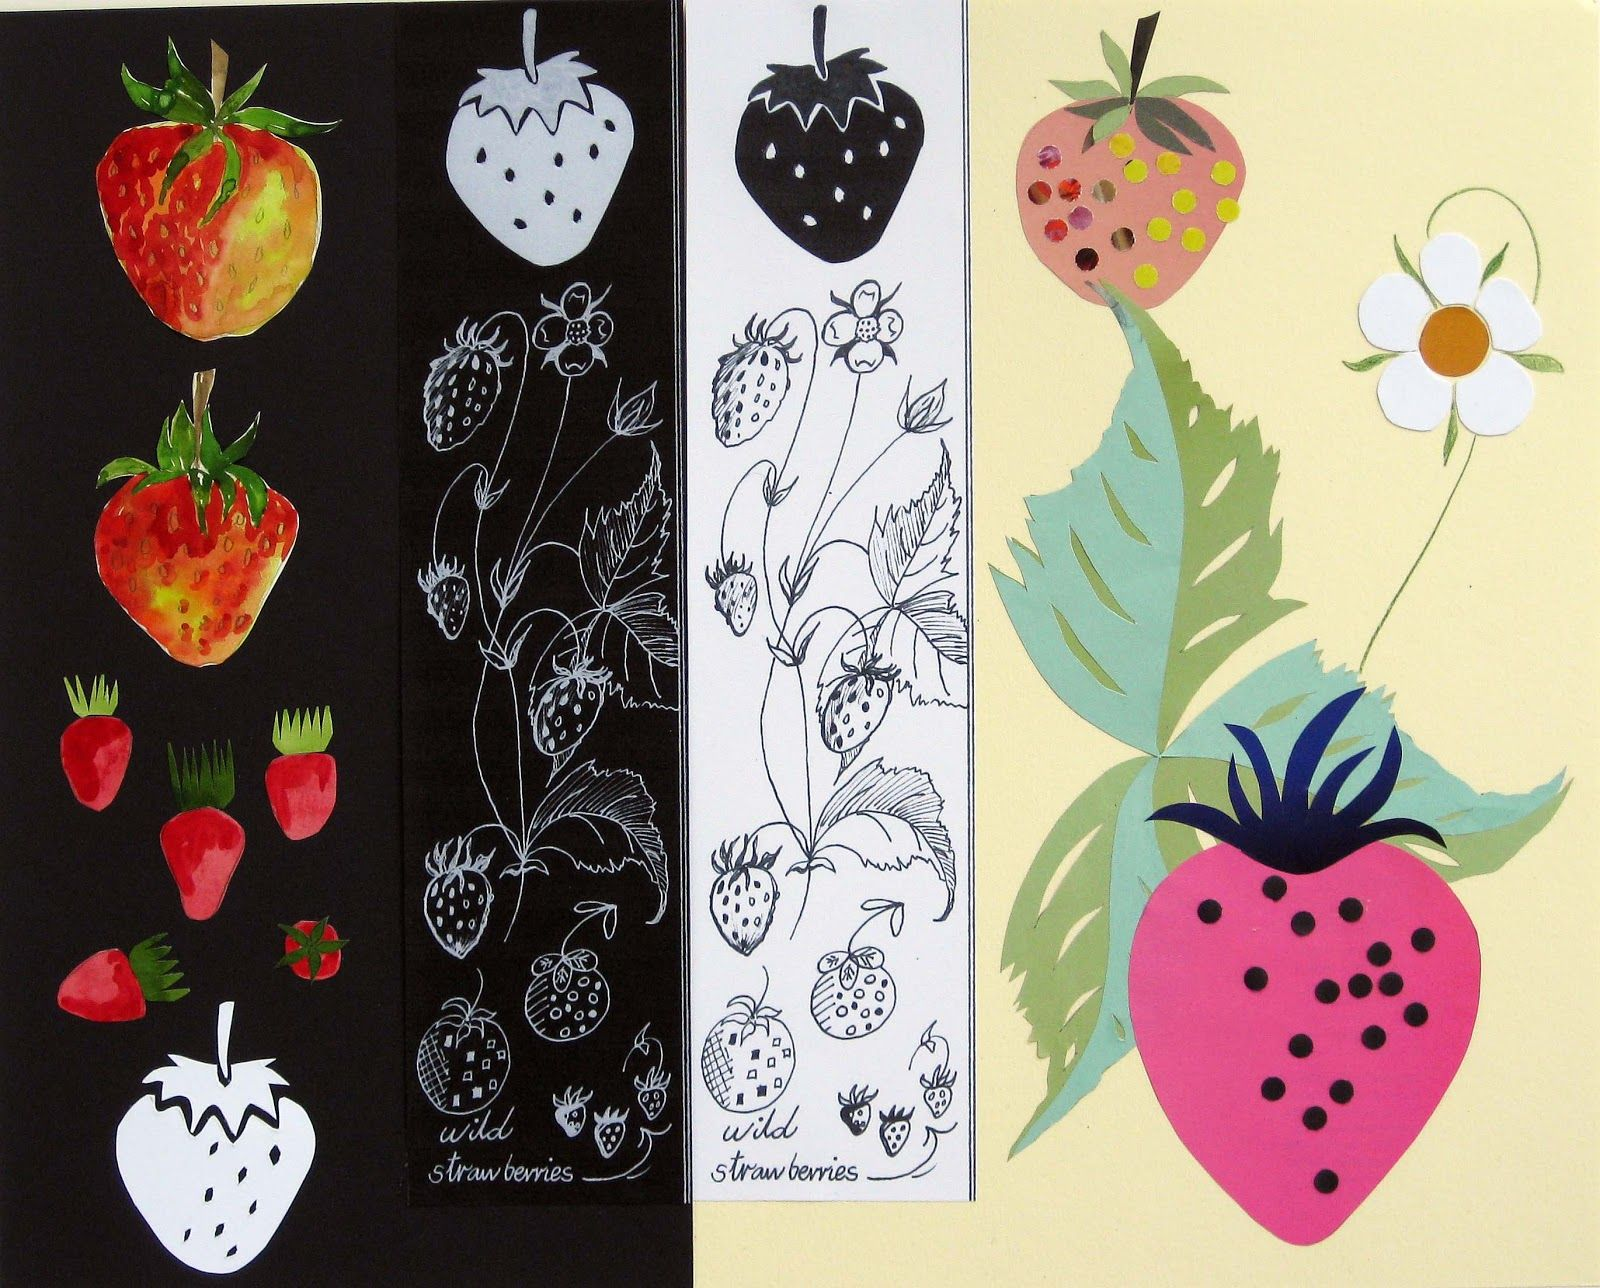 A Strawberry Worksheet By Hilary